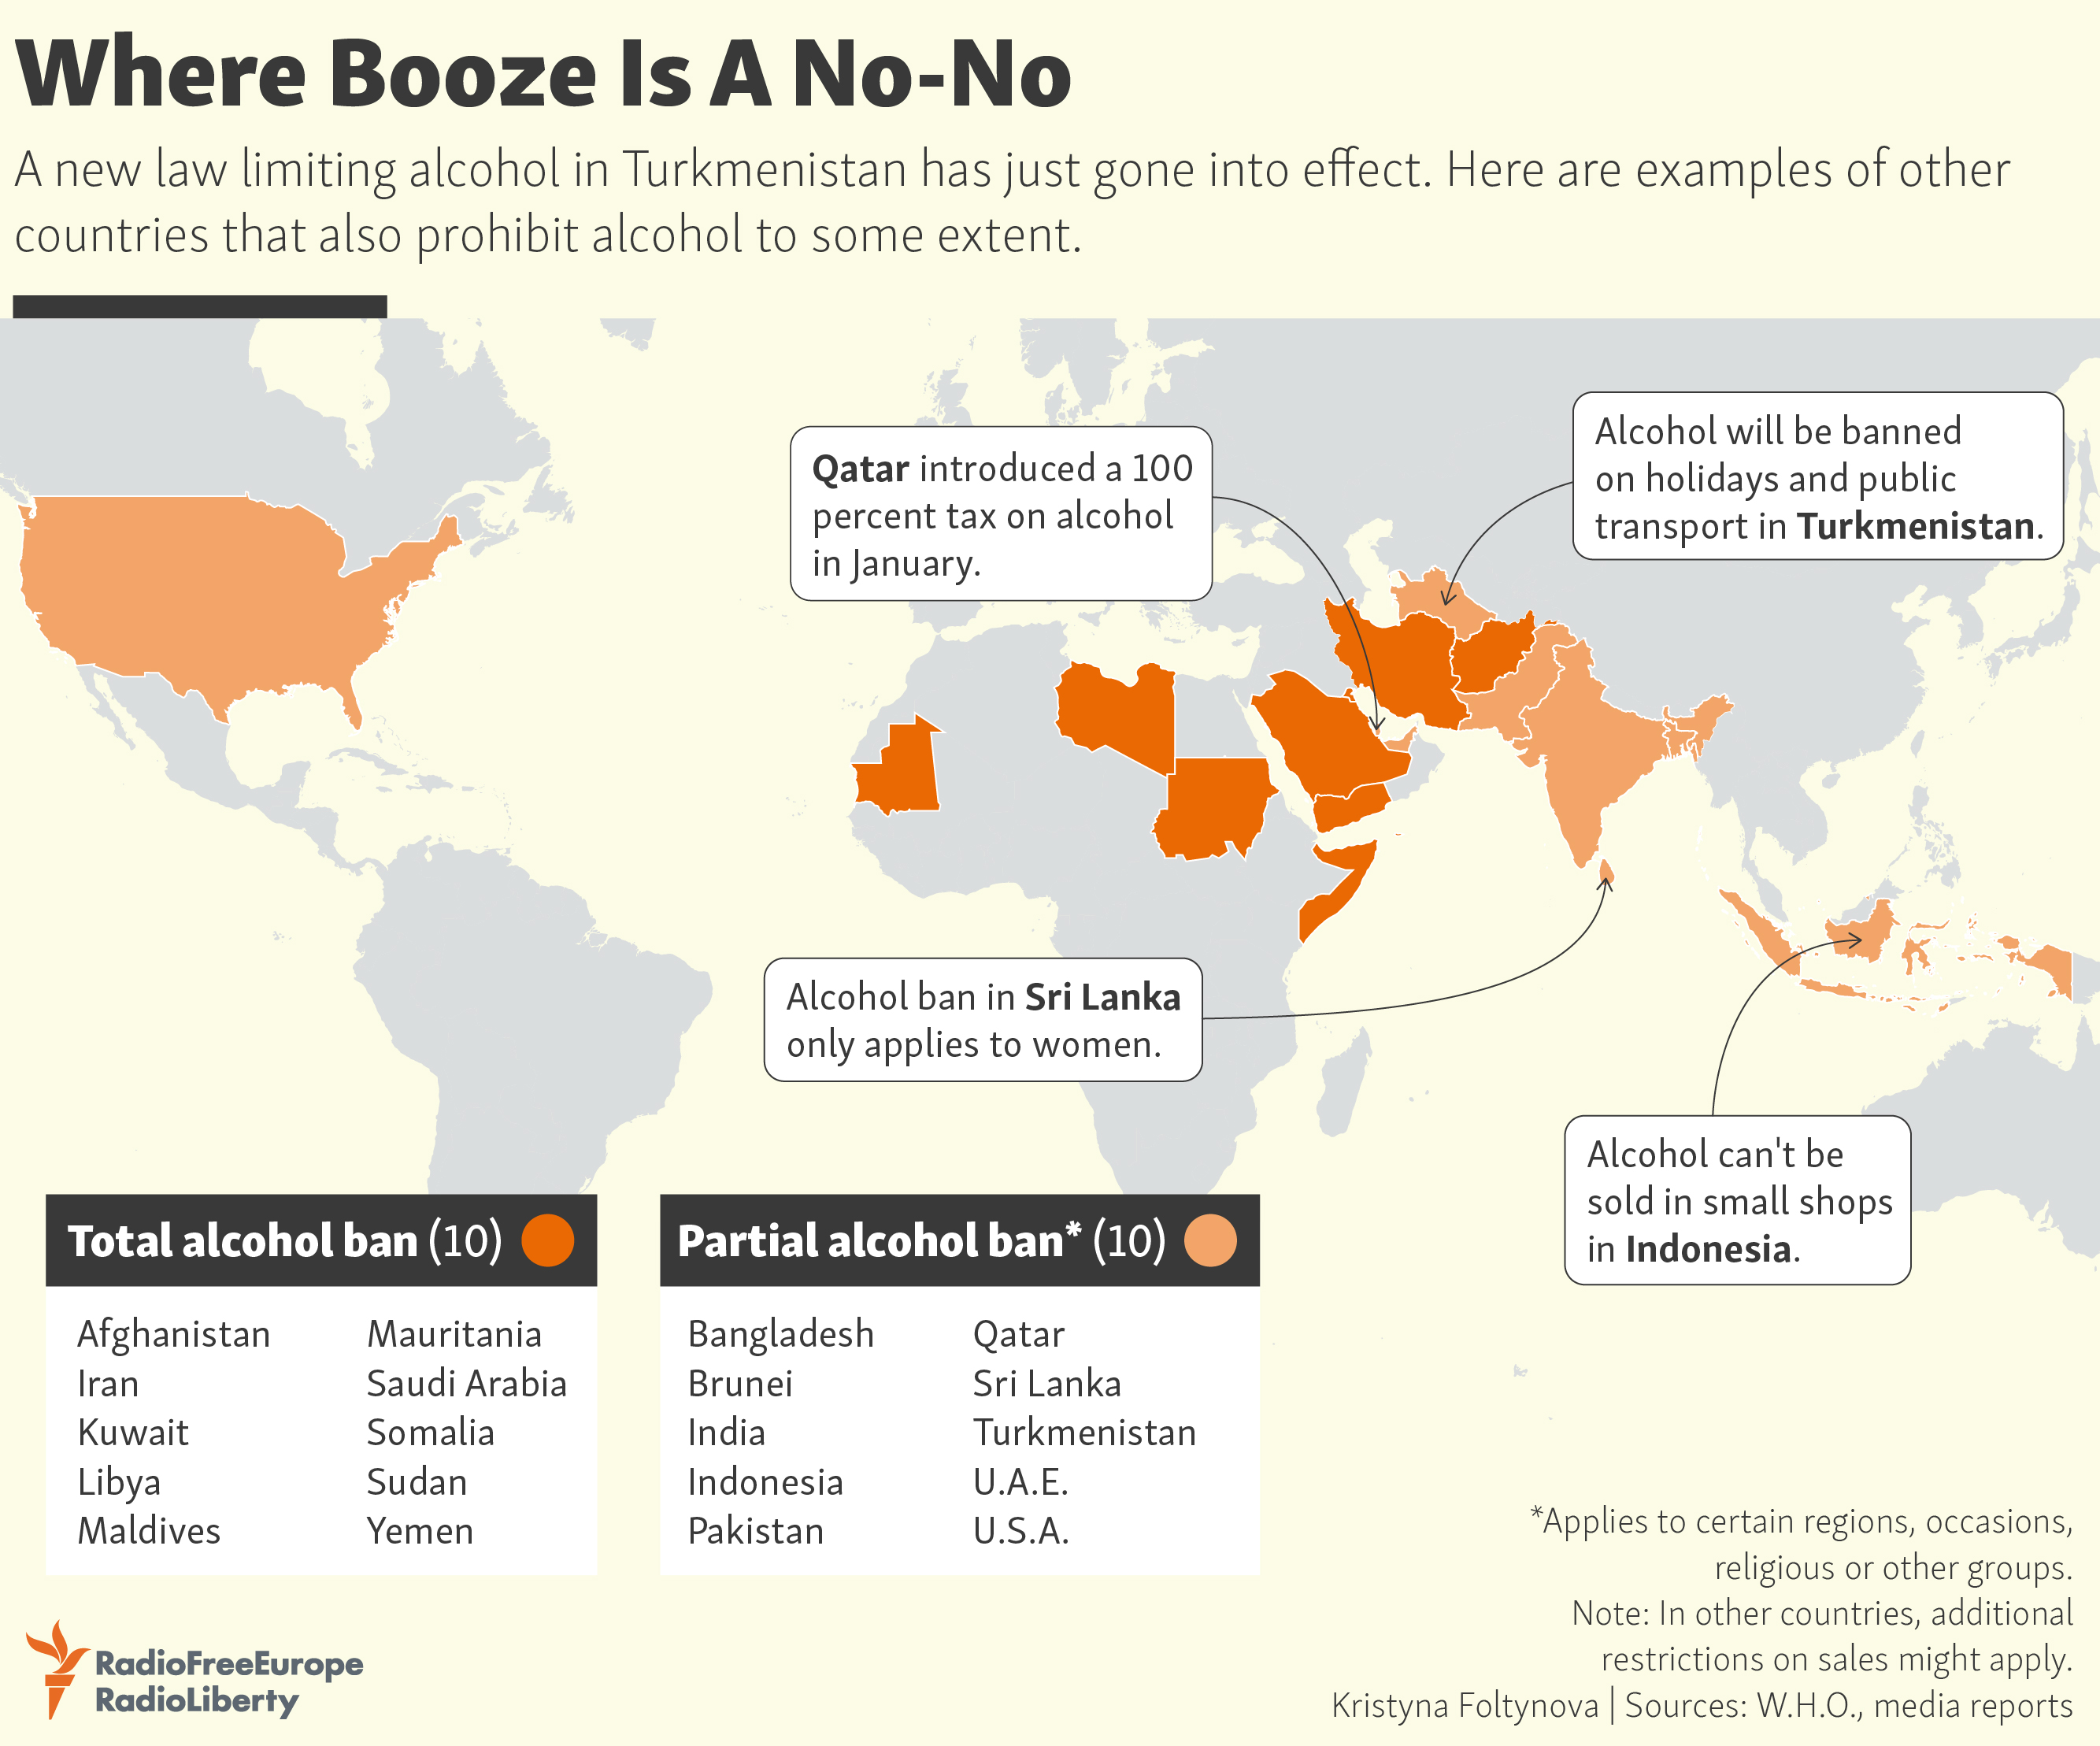 Where Booze Is A No-No on map of the gambia, map of malaysia, map of norway, map of angola, map of africa, map of swaziland, map of tunisia, map of middle east, map of bahamas, map of ethiopia, map of morocco, map of somaliland, map of afghanistan, map of sudan, map of nepal, map of niger, map of yemen, map of kenya, map of burundi, map of tanzania,